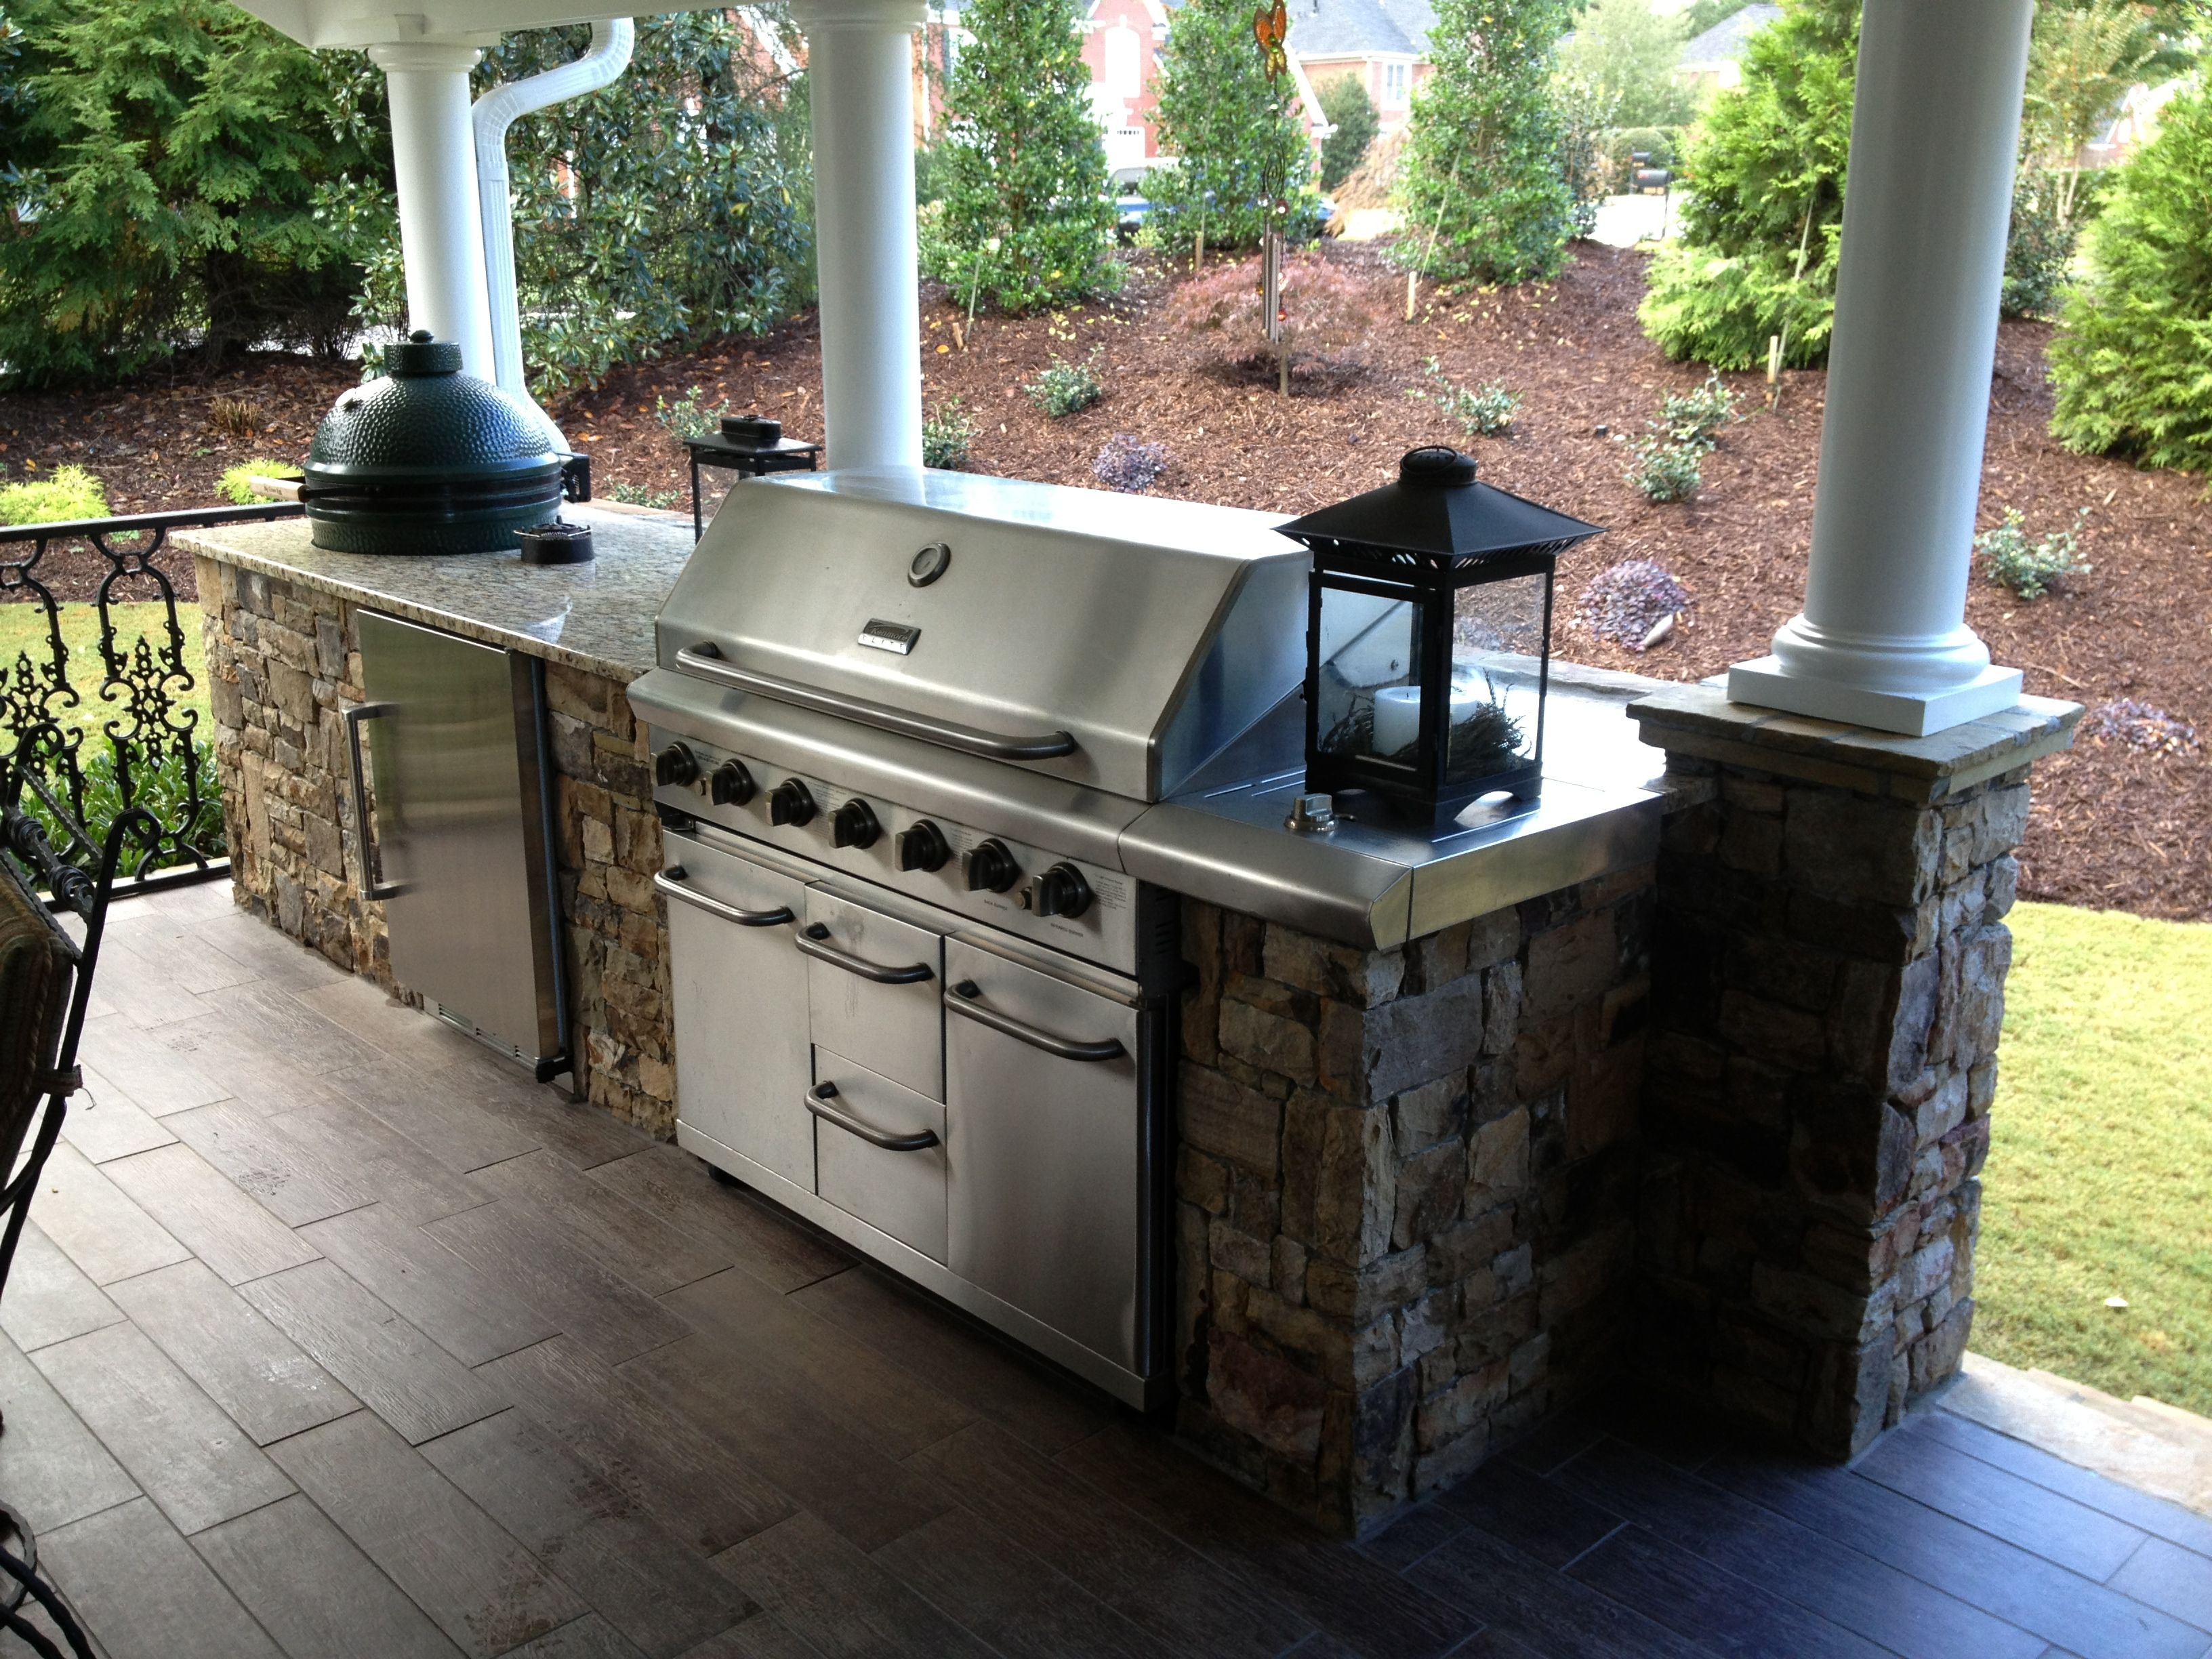 Outdoor kitchen design with grill and Green Egg smoker. Nice ...